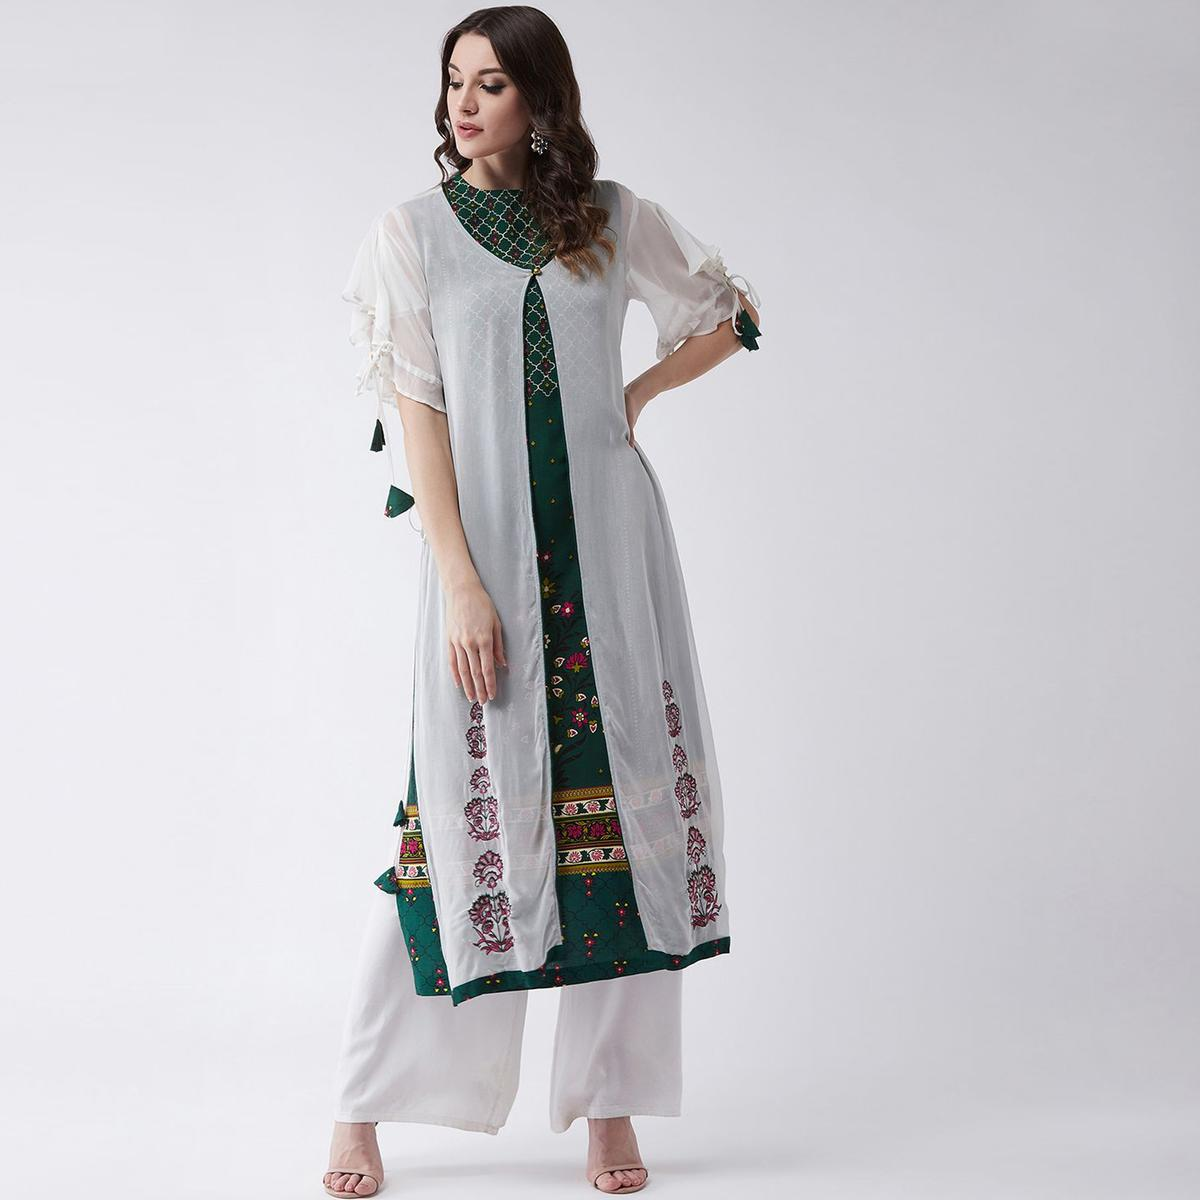 Pannkh - Women's Green Colored Mughal Rayon Kurti With Embroidered Shrug